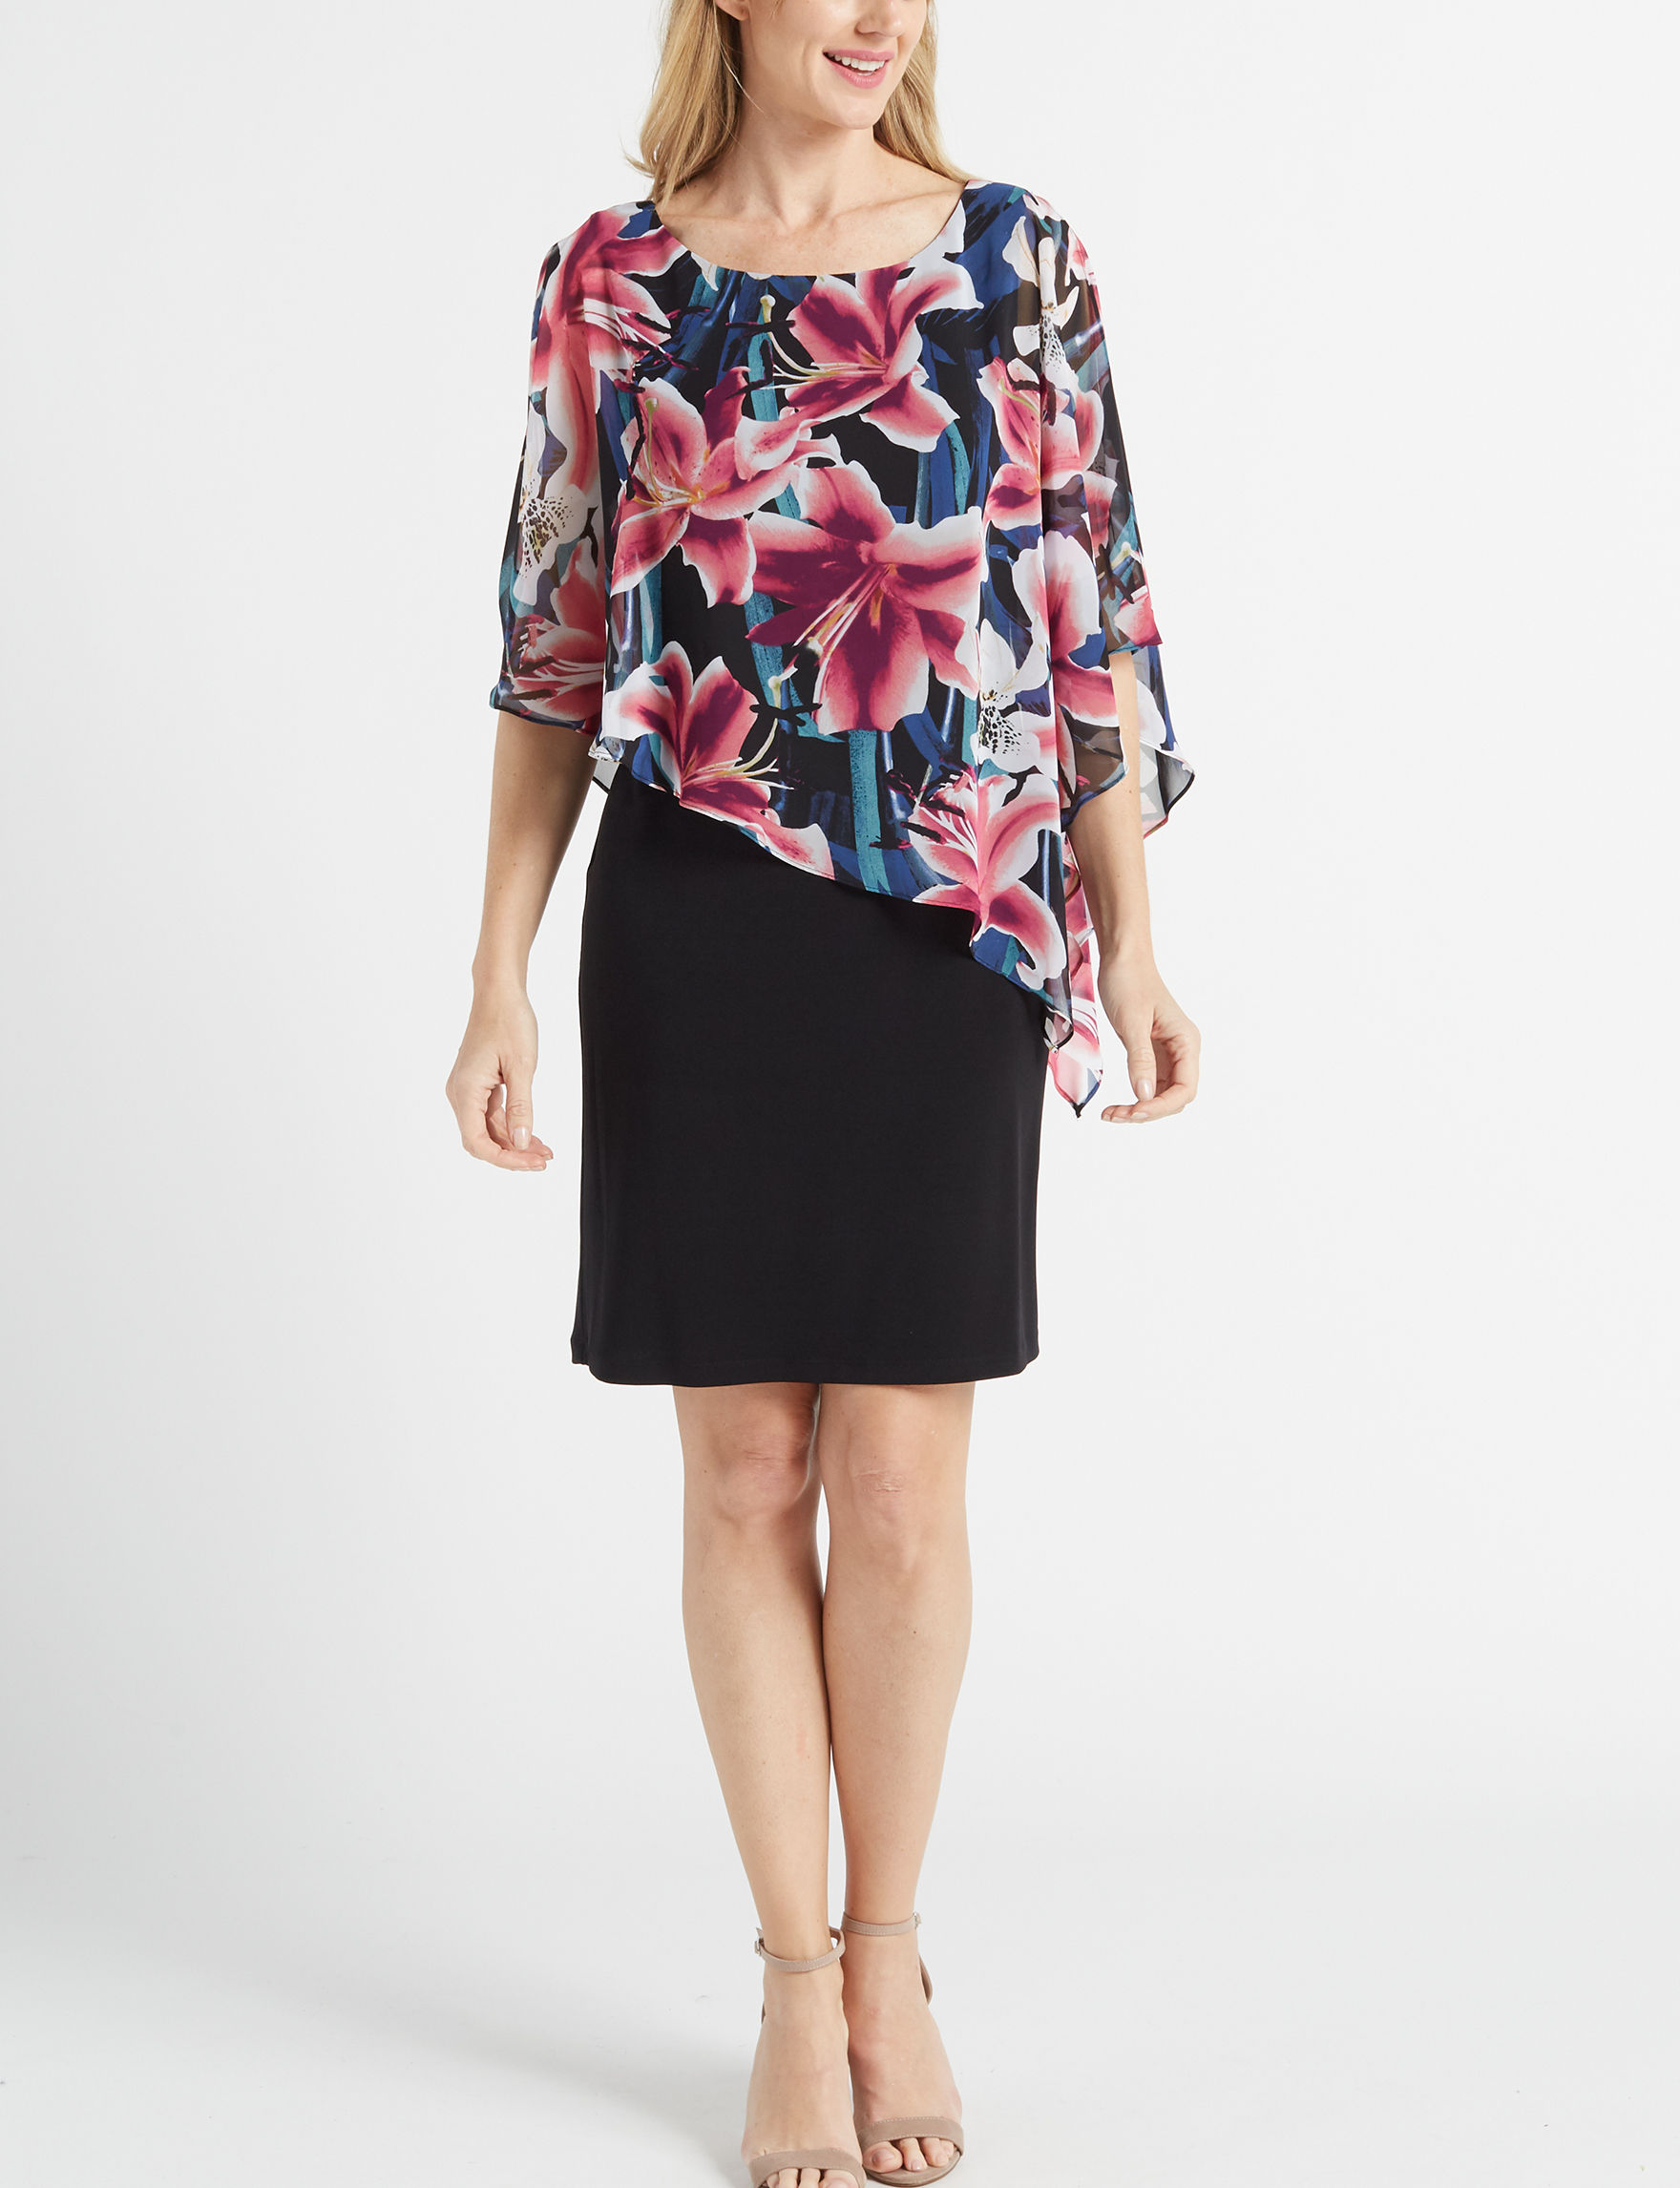 Connected Black Multi Everyday & Casual Jacket Dresses